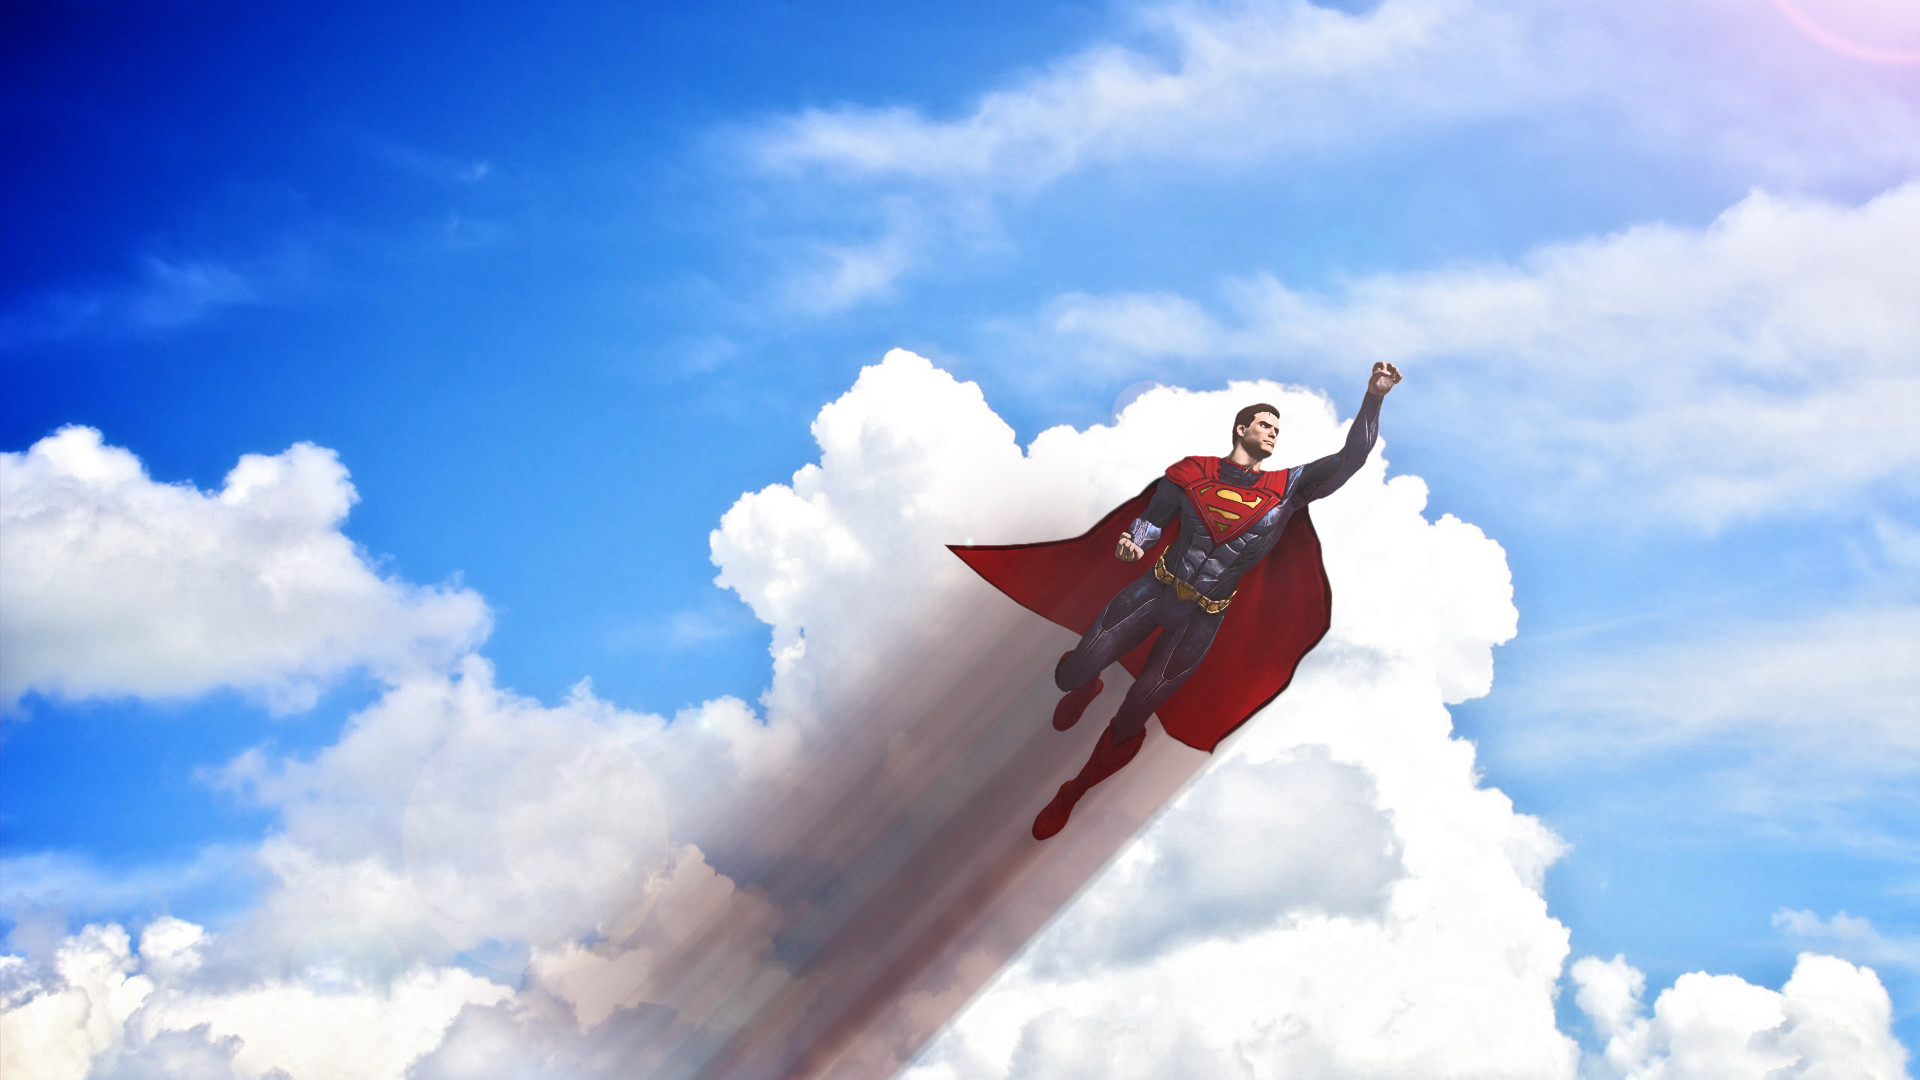 superman hd images download, superman 1080p wallpaper